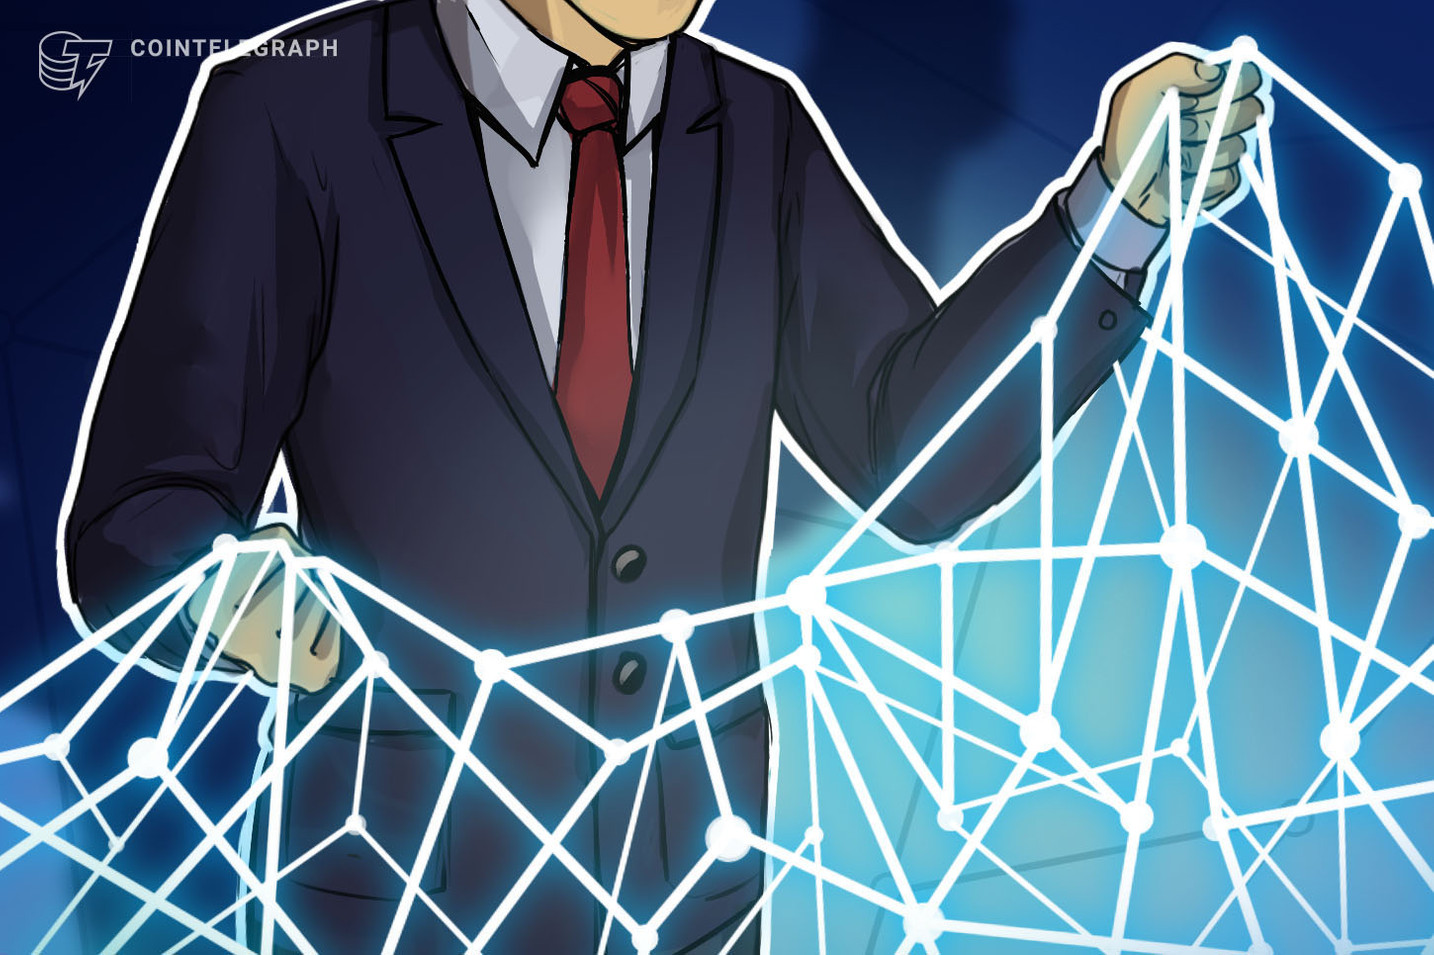 New York Assemblyman Says Blockchain Industry Needs Better Lobbying, Education